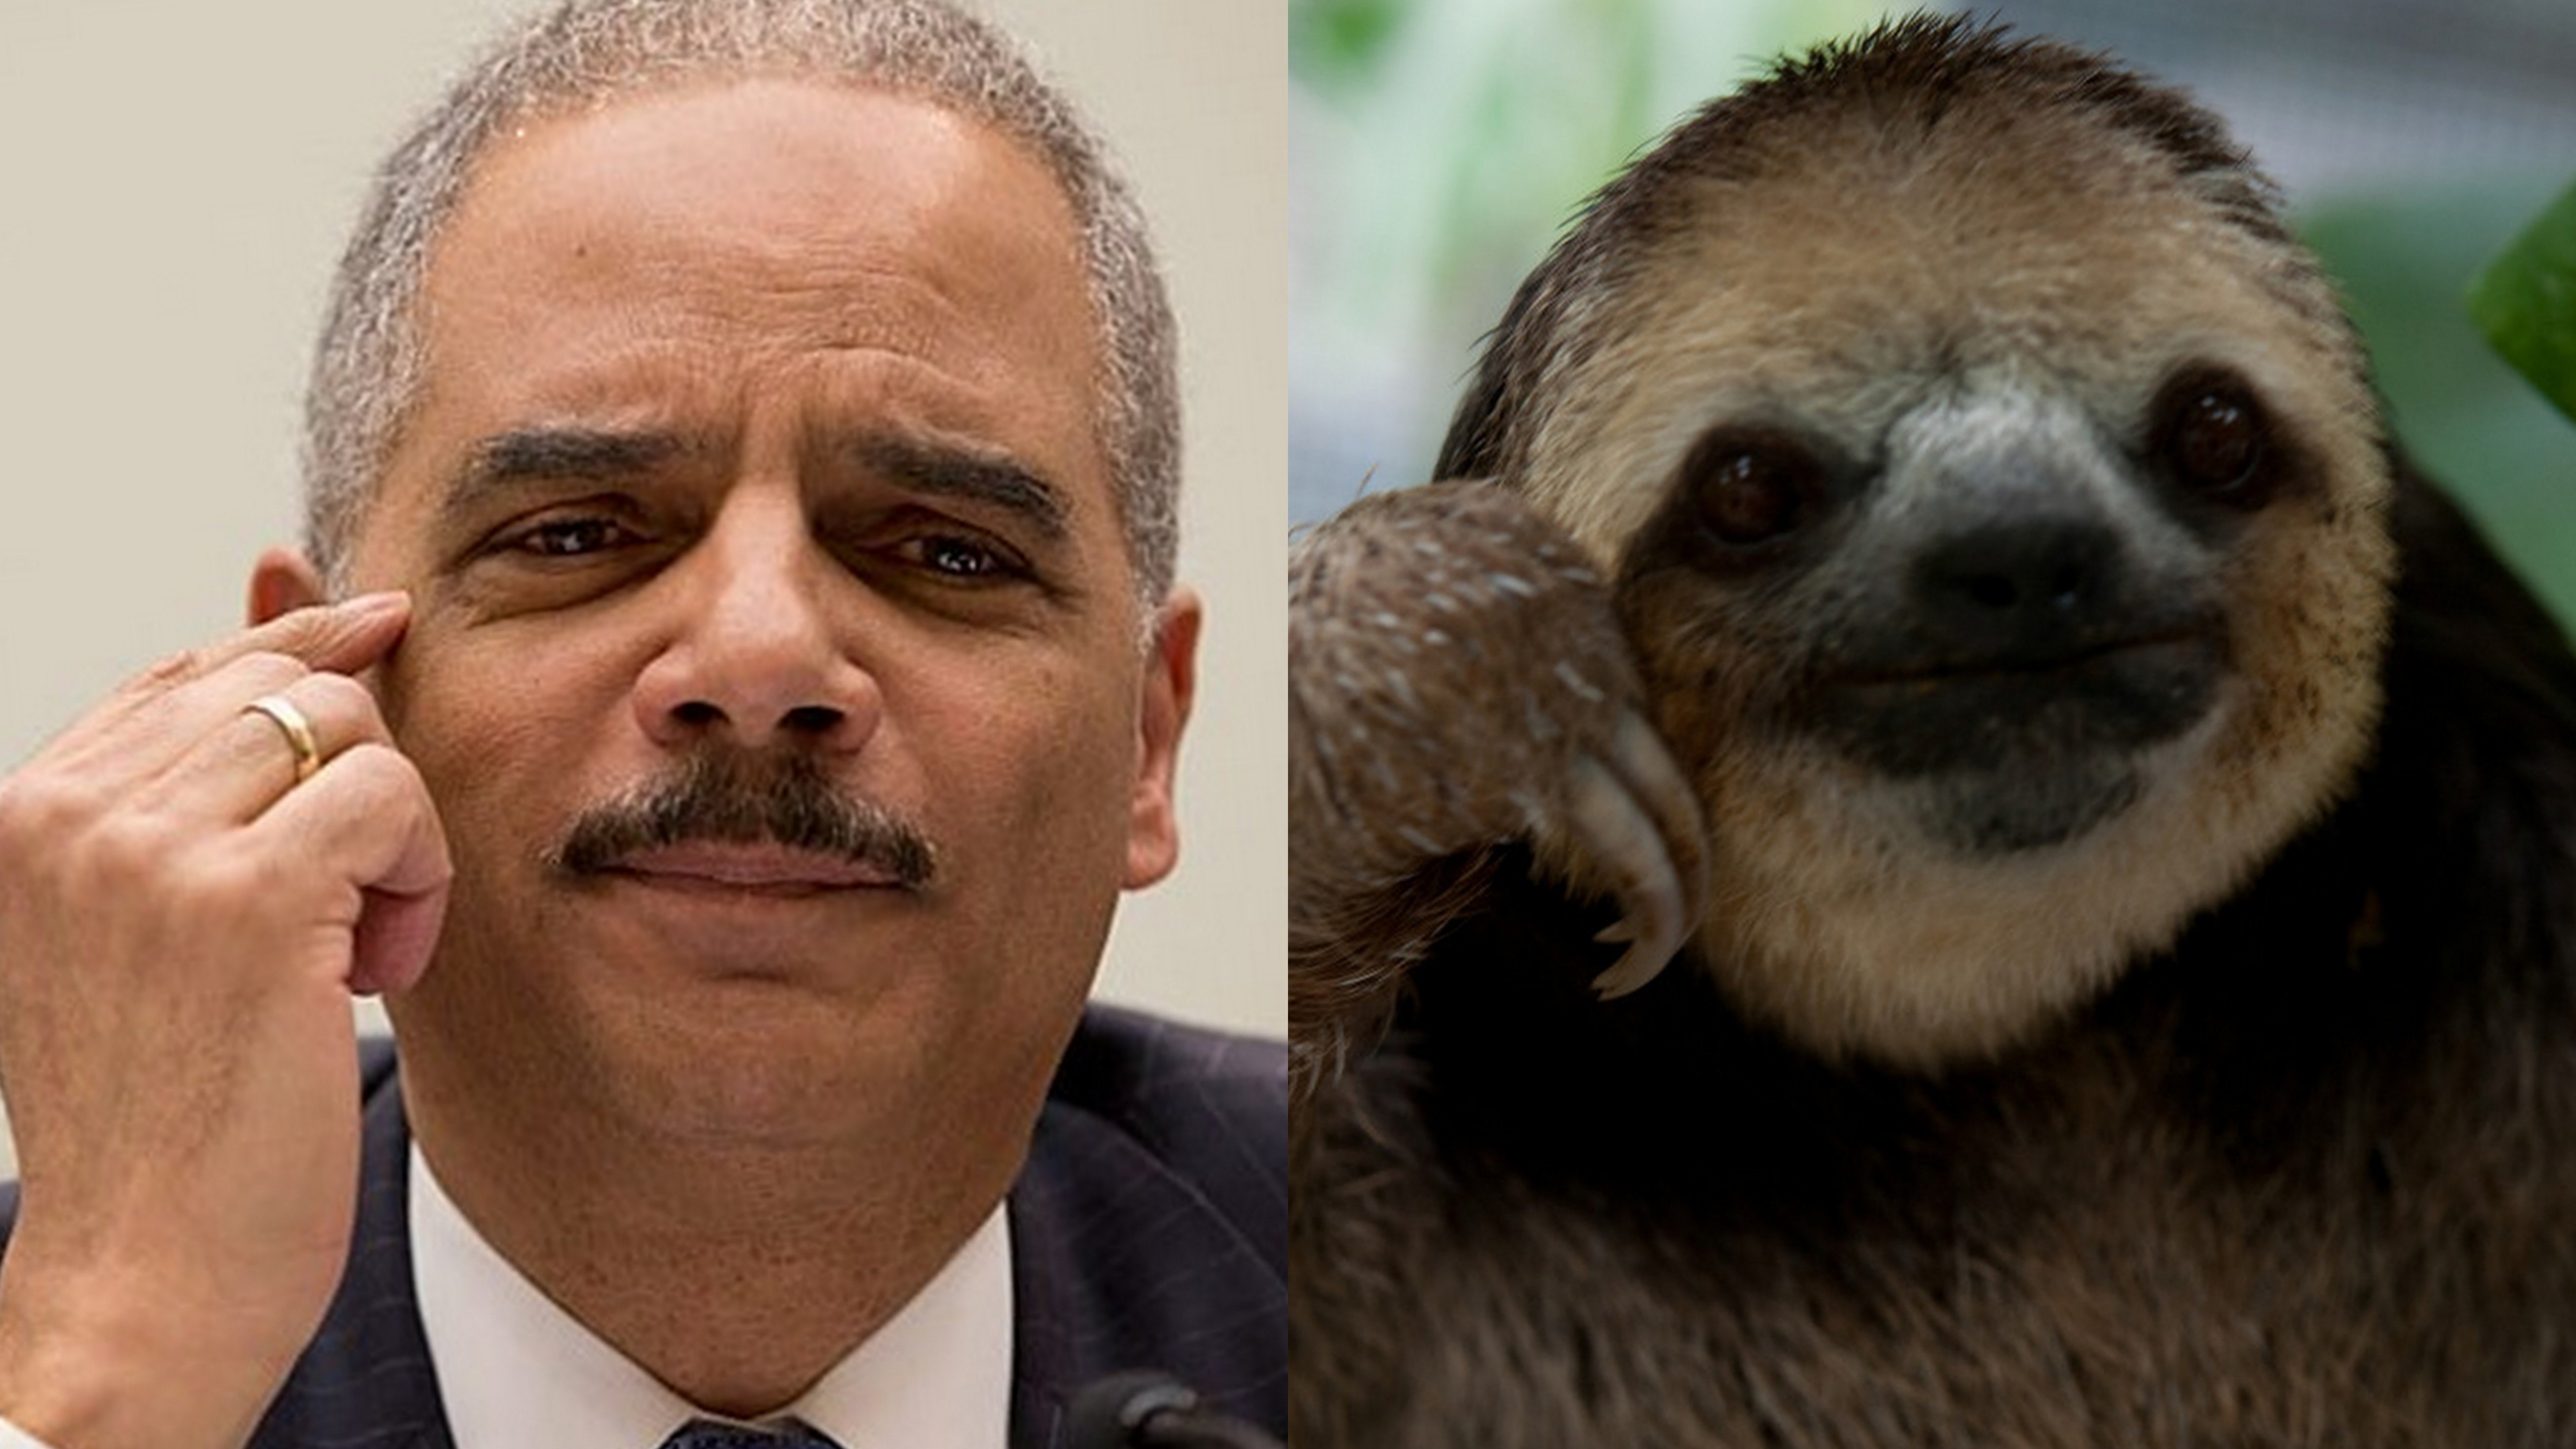 Political Sloths WashedUp Bureaucrats and BList Lawmakers Rush to Defend Disgraced Andrew McCabe Here Are Their Nonsensical Rants